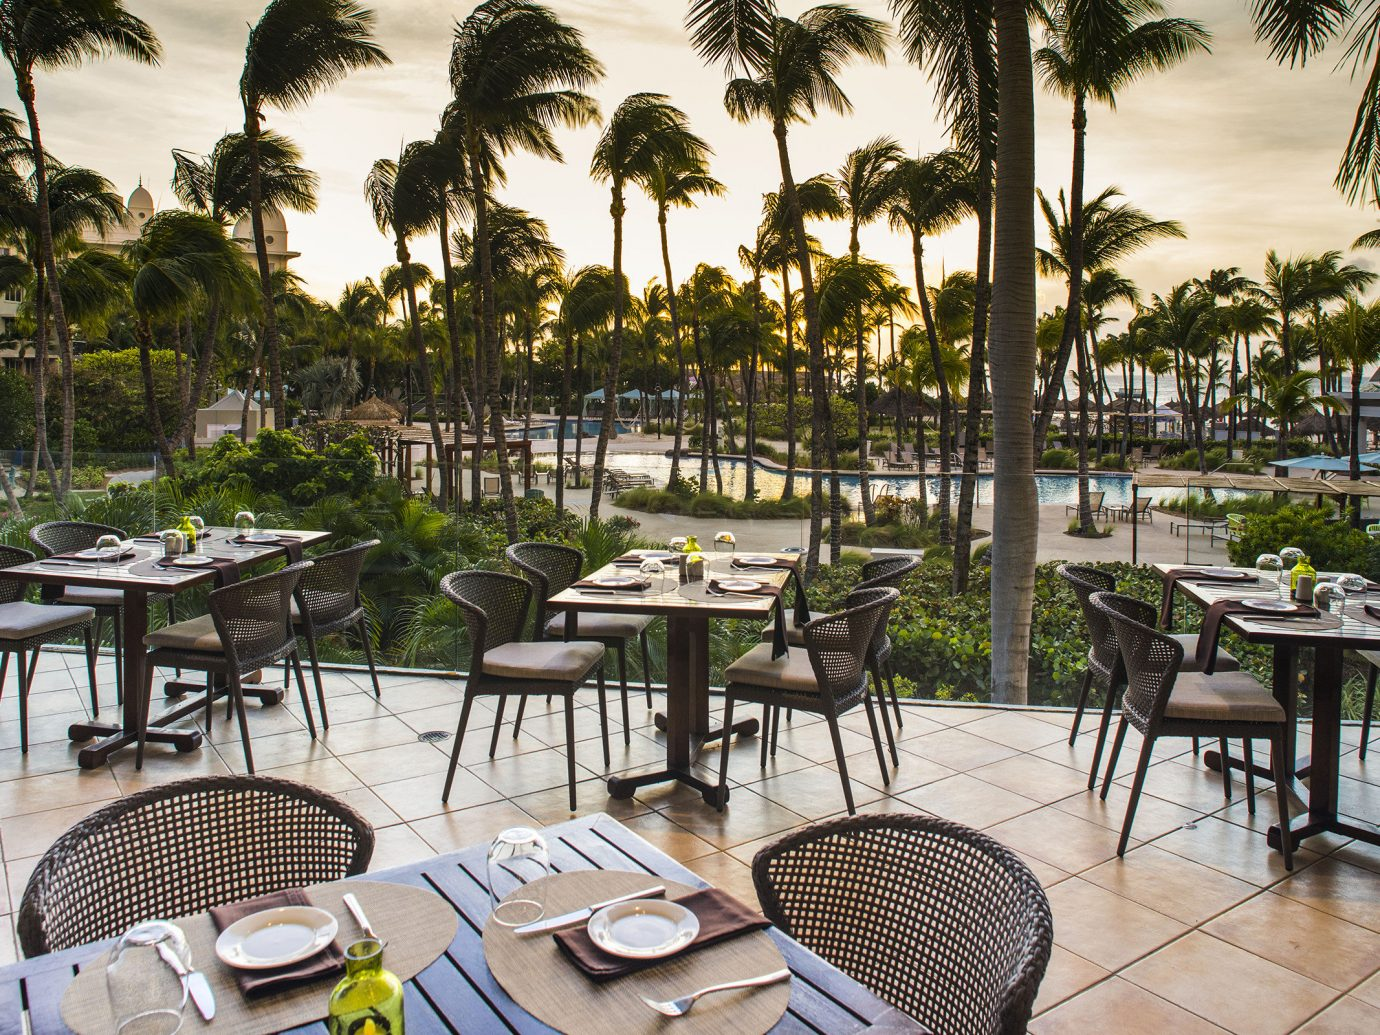 Aruba caribbean Hotels tree outdoor water chair property Resort restaurant vacation estate palm real estate condominium Pool lined furniture several dining table